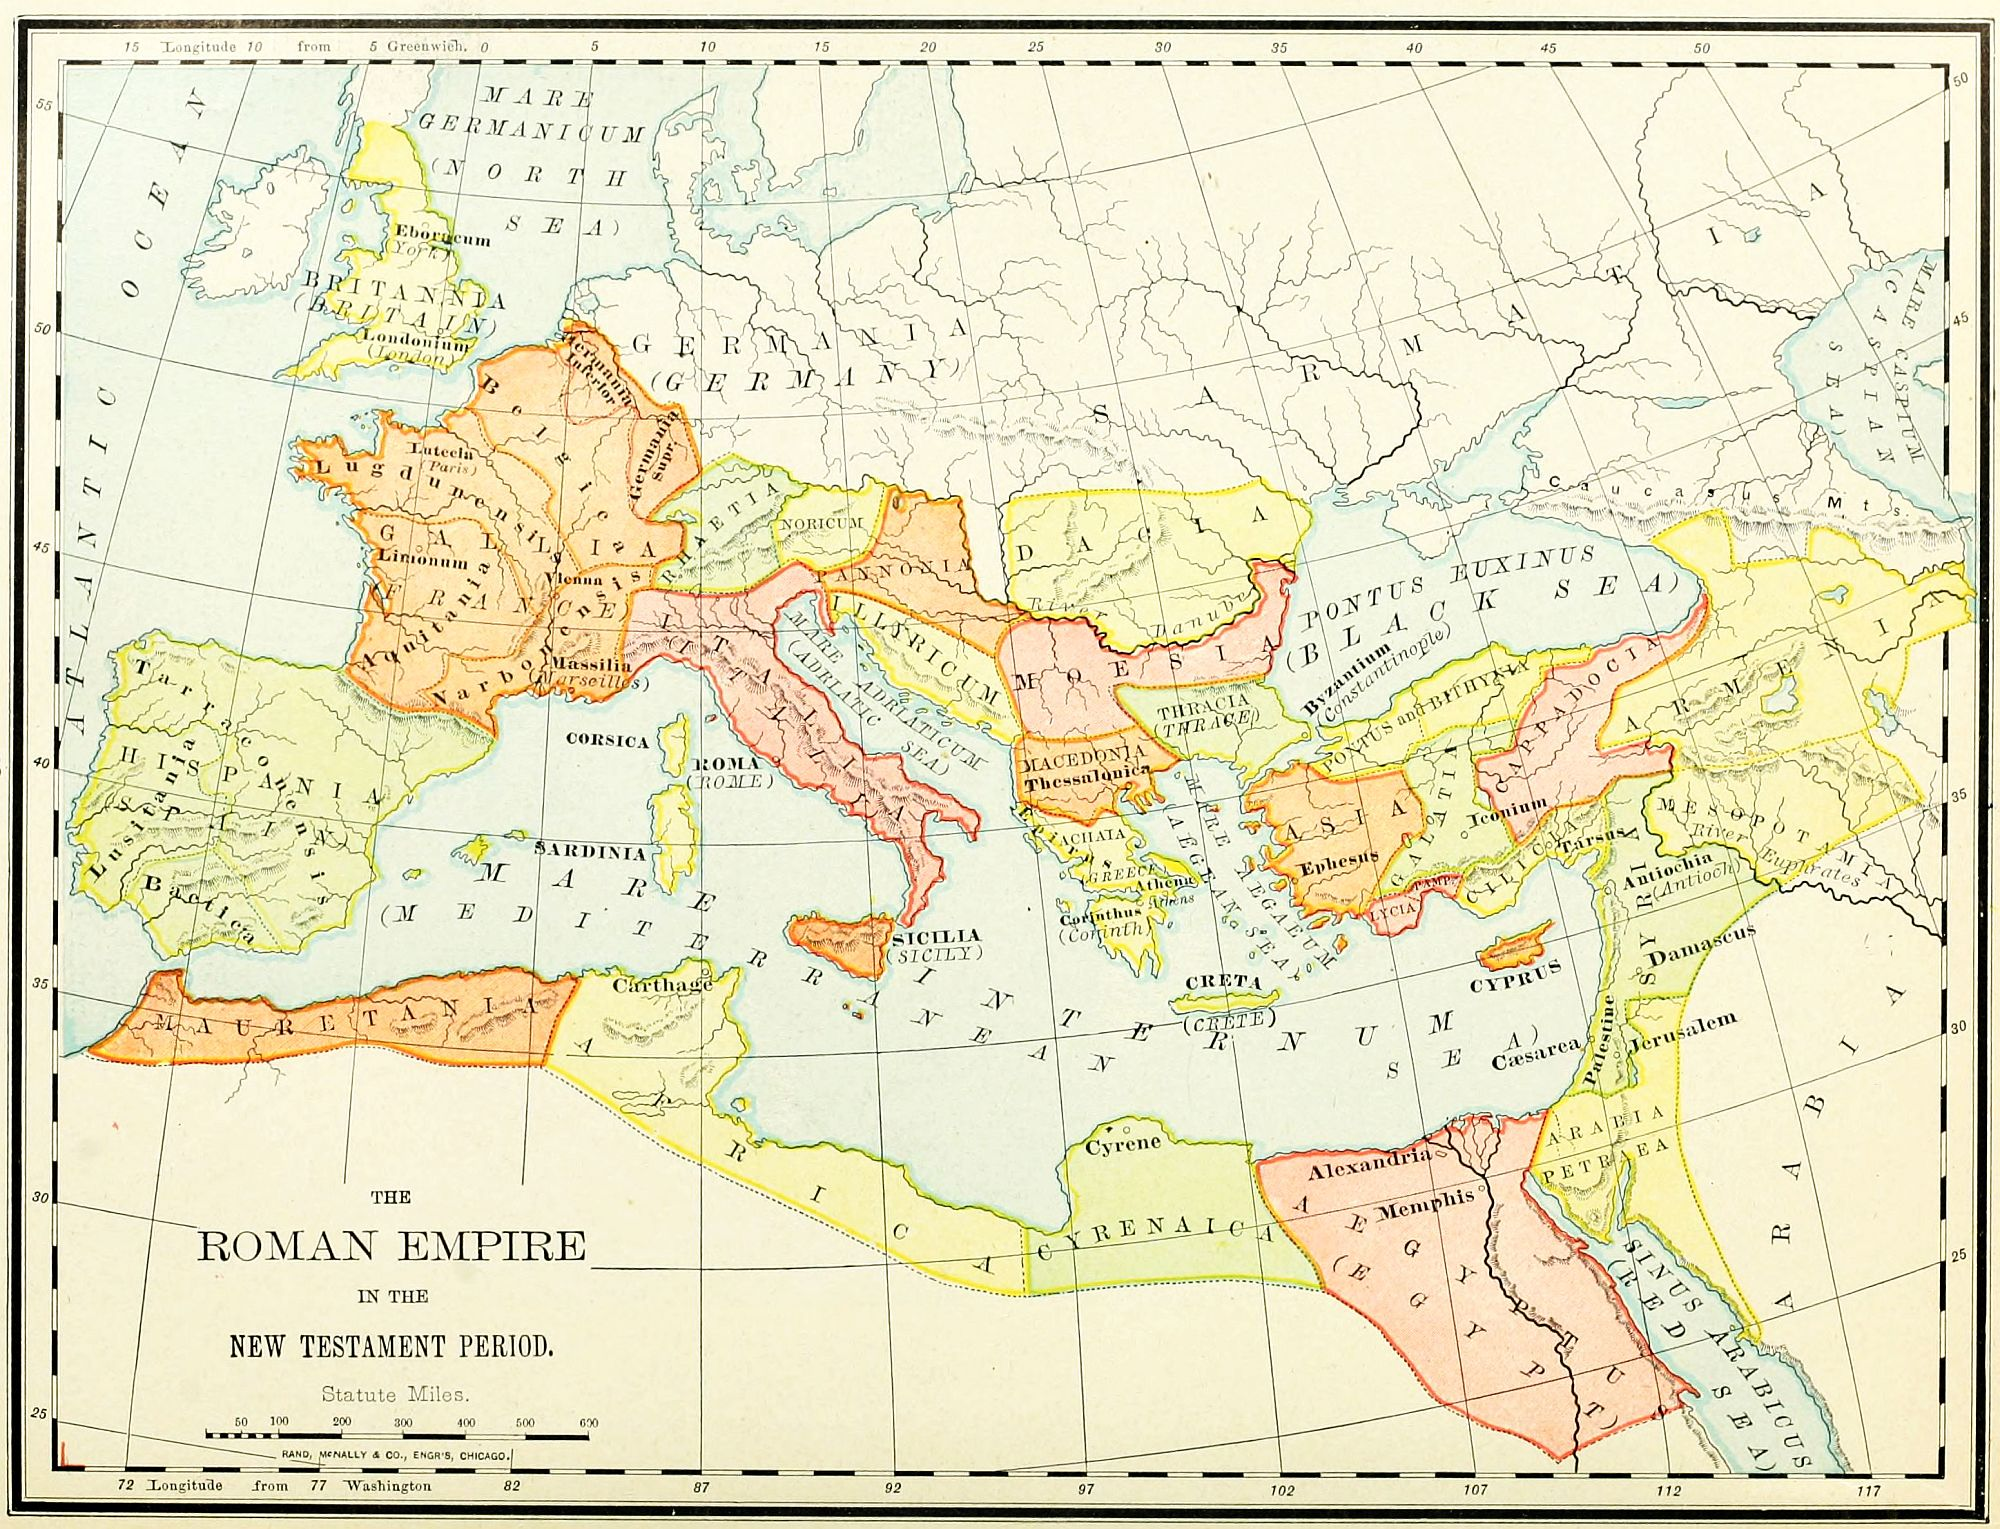 a history of roman empire Ancient rome and the republic [] the foundations of an empire [] according to literature, rome was founded in 753 bc by the twins named romulus and remus.